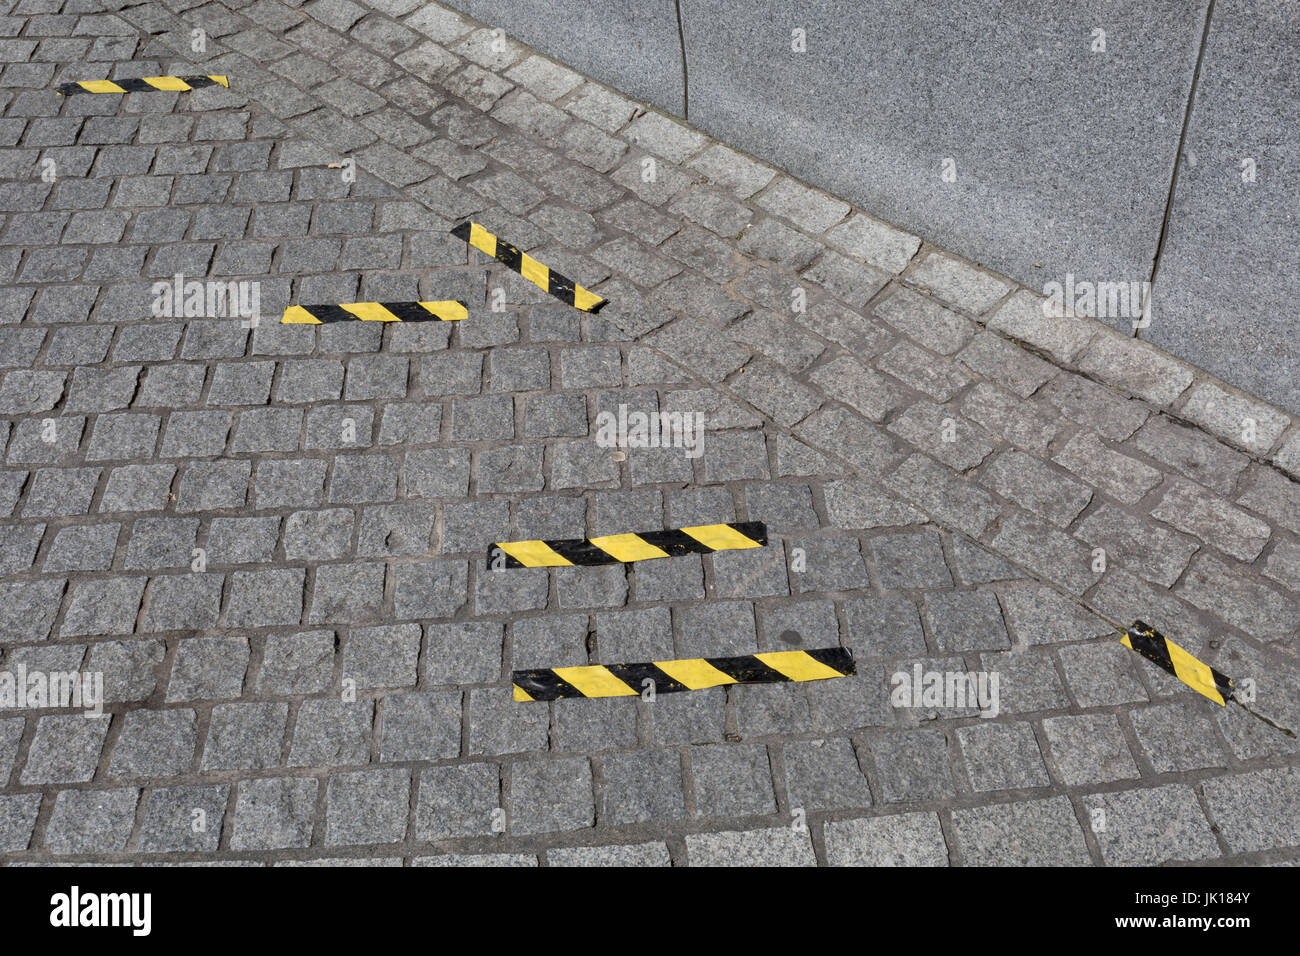 Yellow and black hazard tape on the ground of the pavement in Jubilee Gardens, on 20th July 2017, on the Southbank, - Stock Image